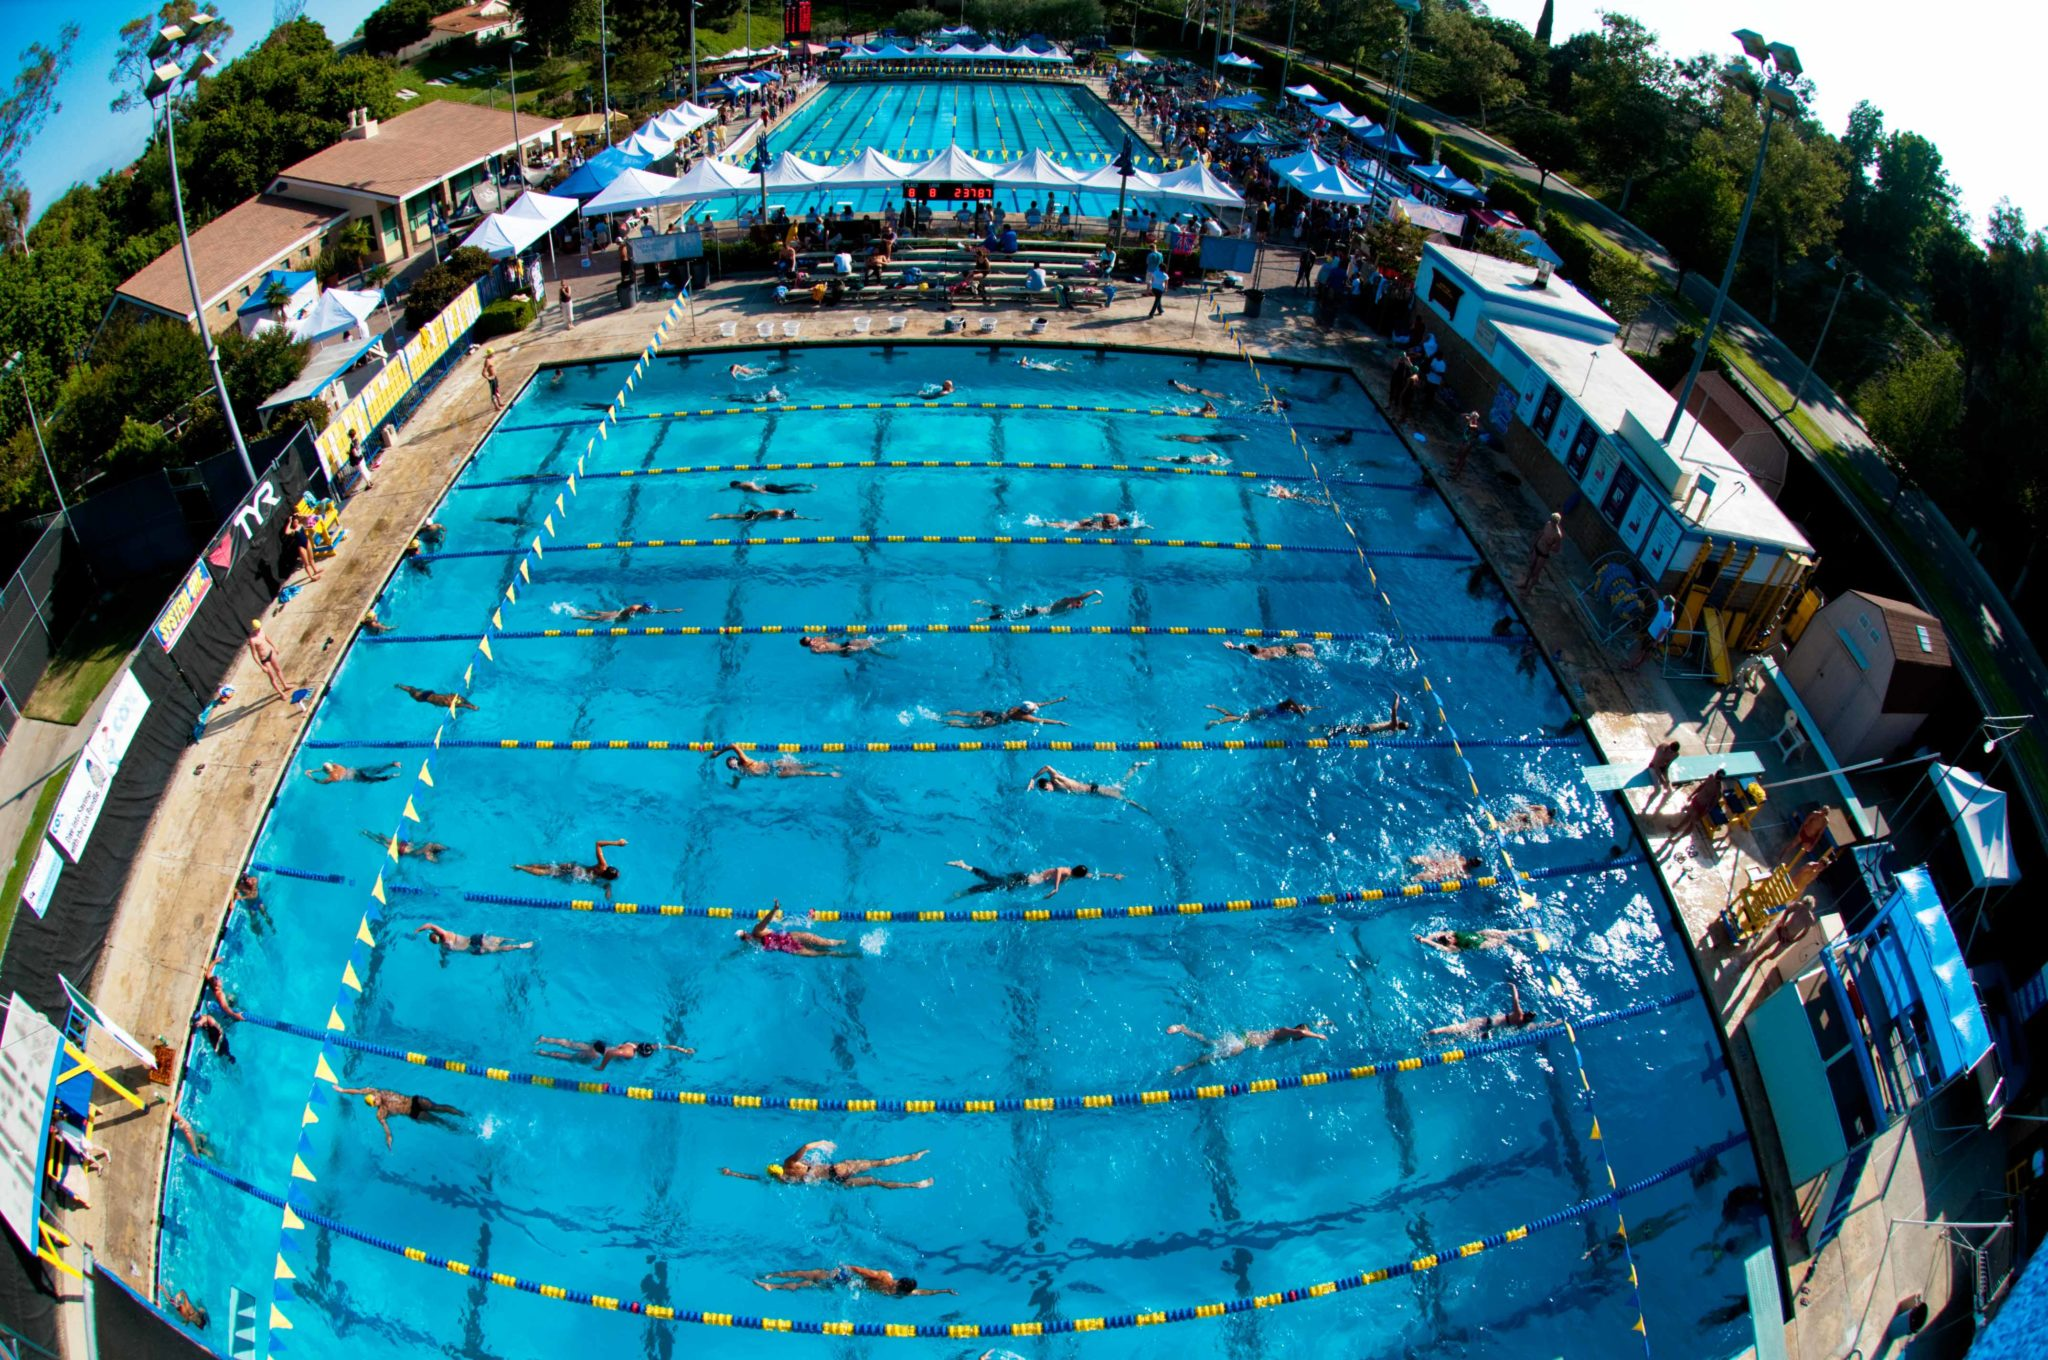 Mission viejo nadadores expecting road block in aquatic - San jose state university swimming pool ...